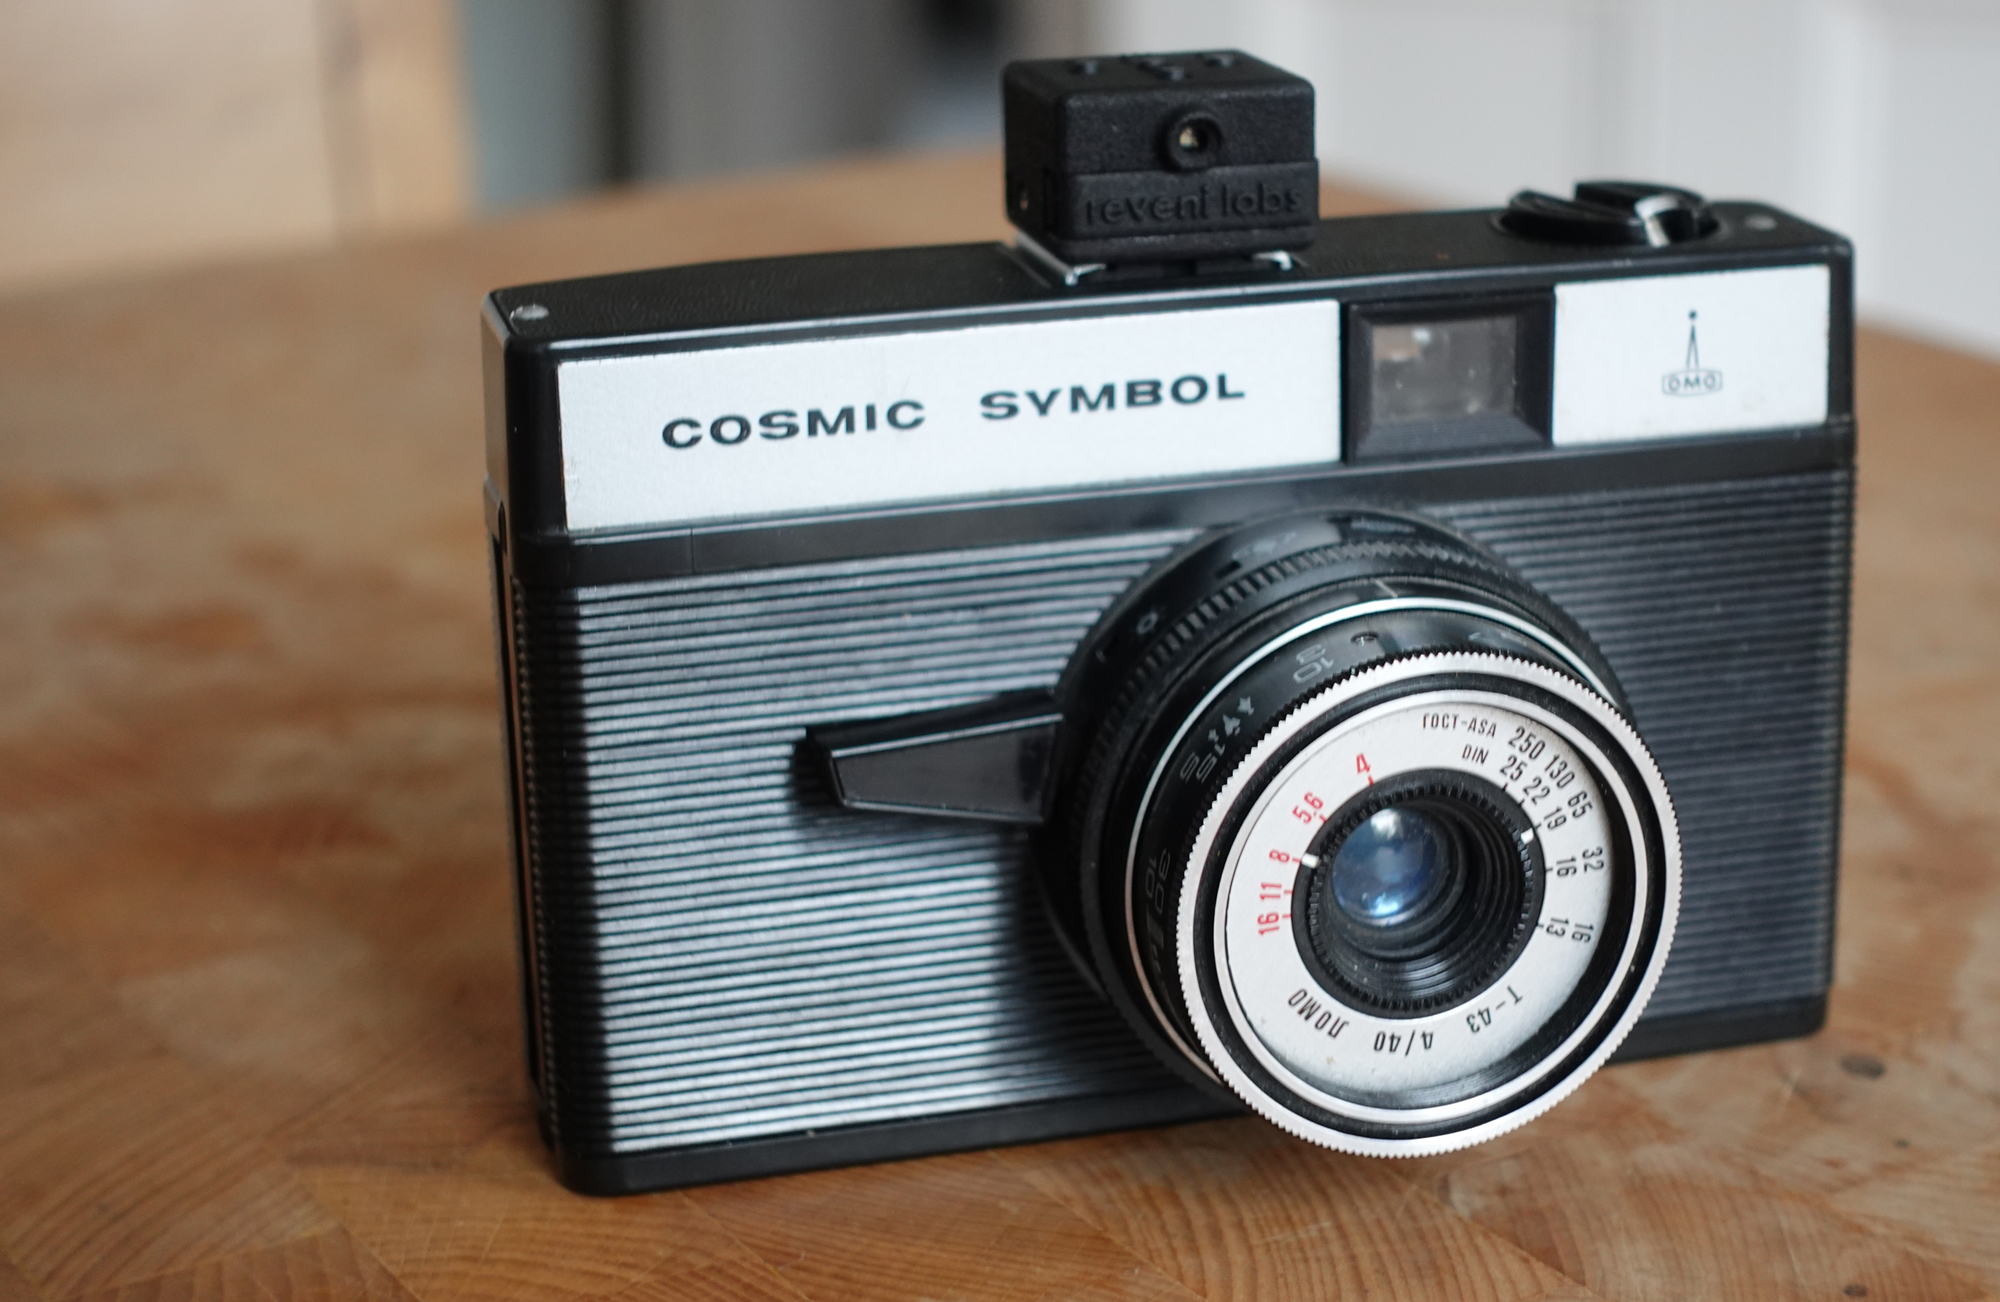 Comsic Symbol camera and Reveni Labs Light Meter (Pic: Stephen Dowling)